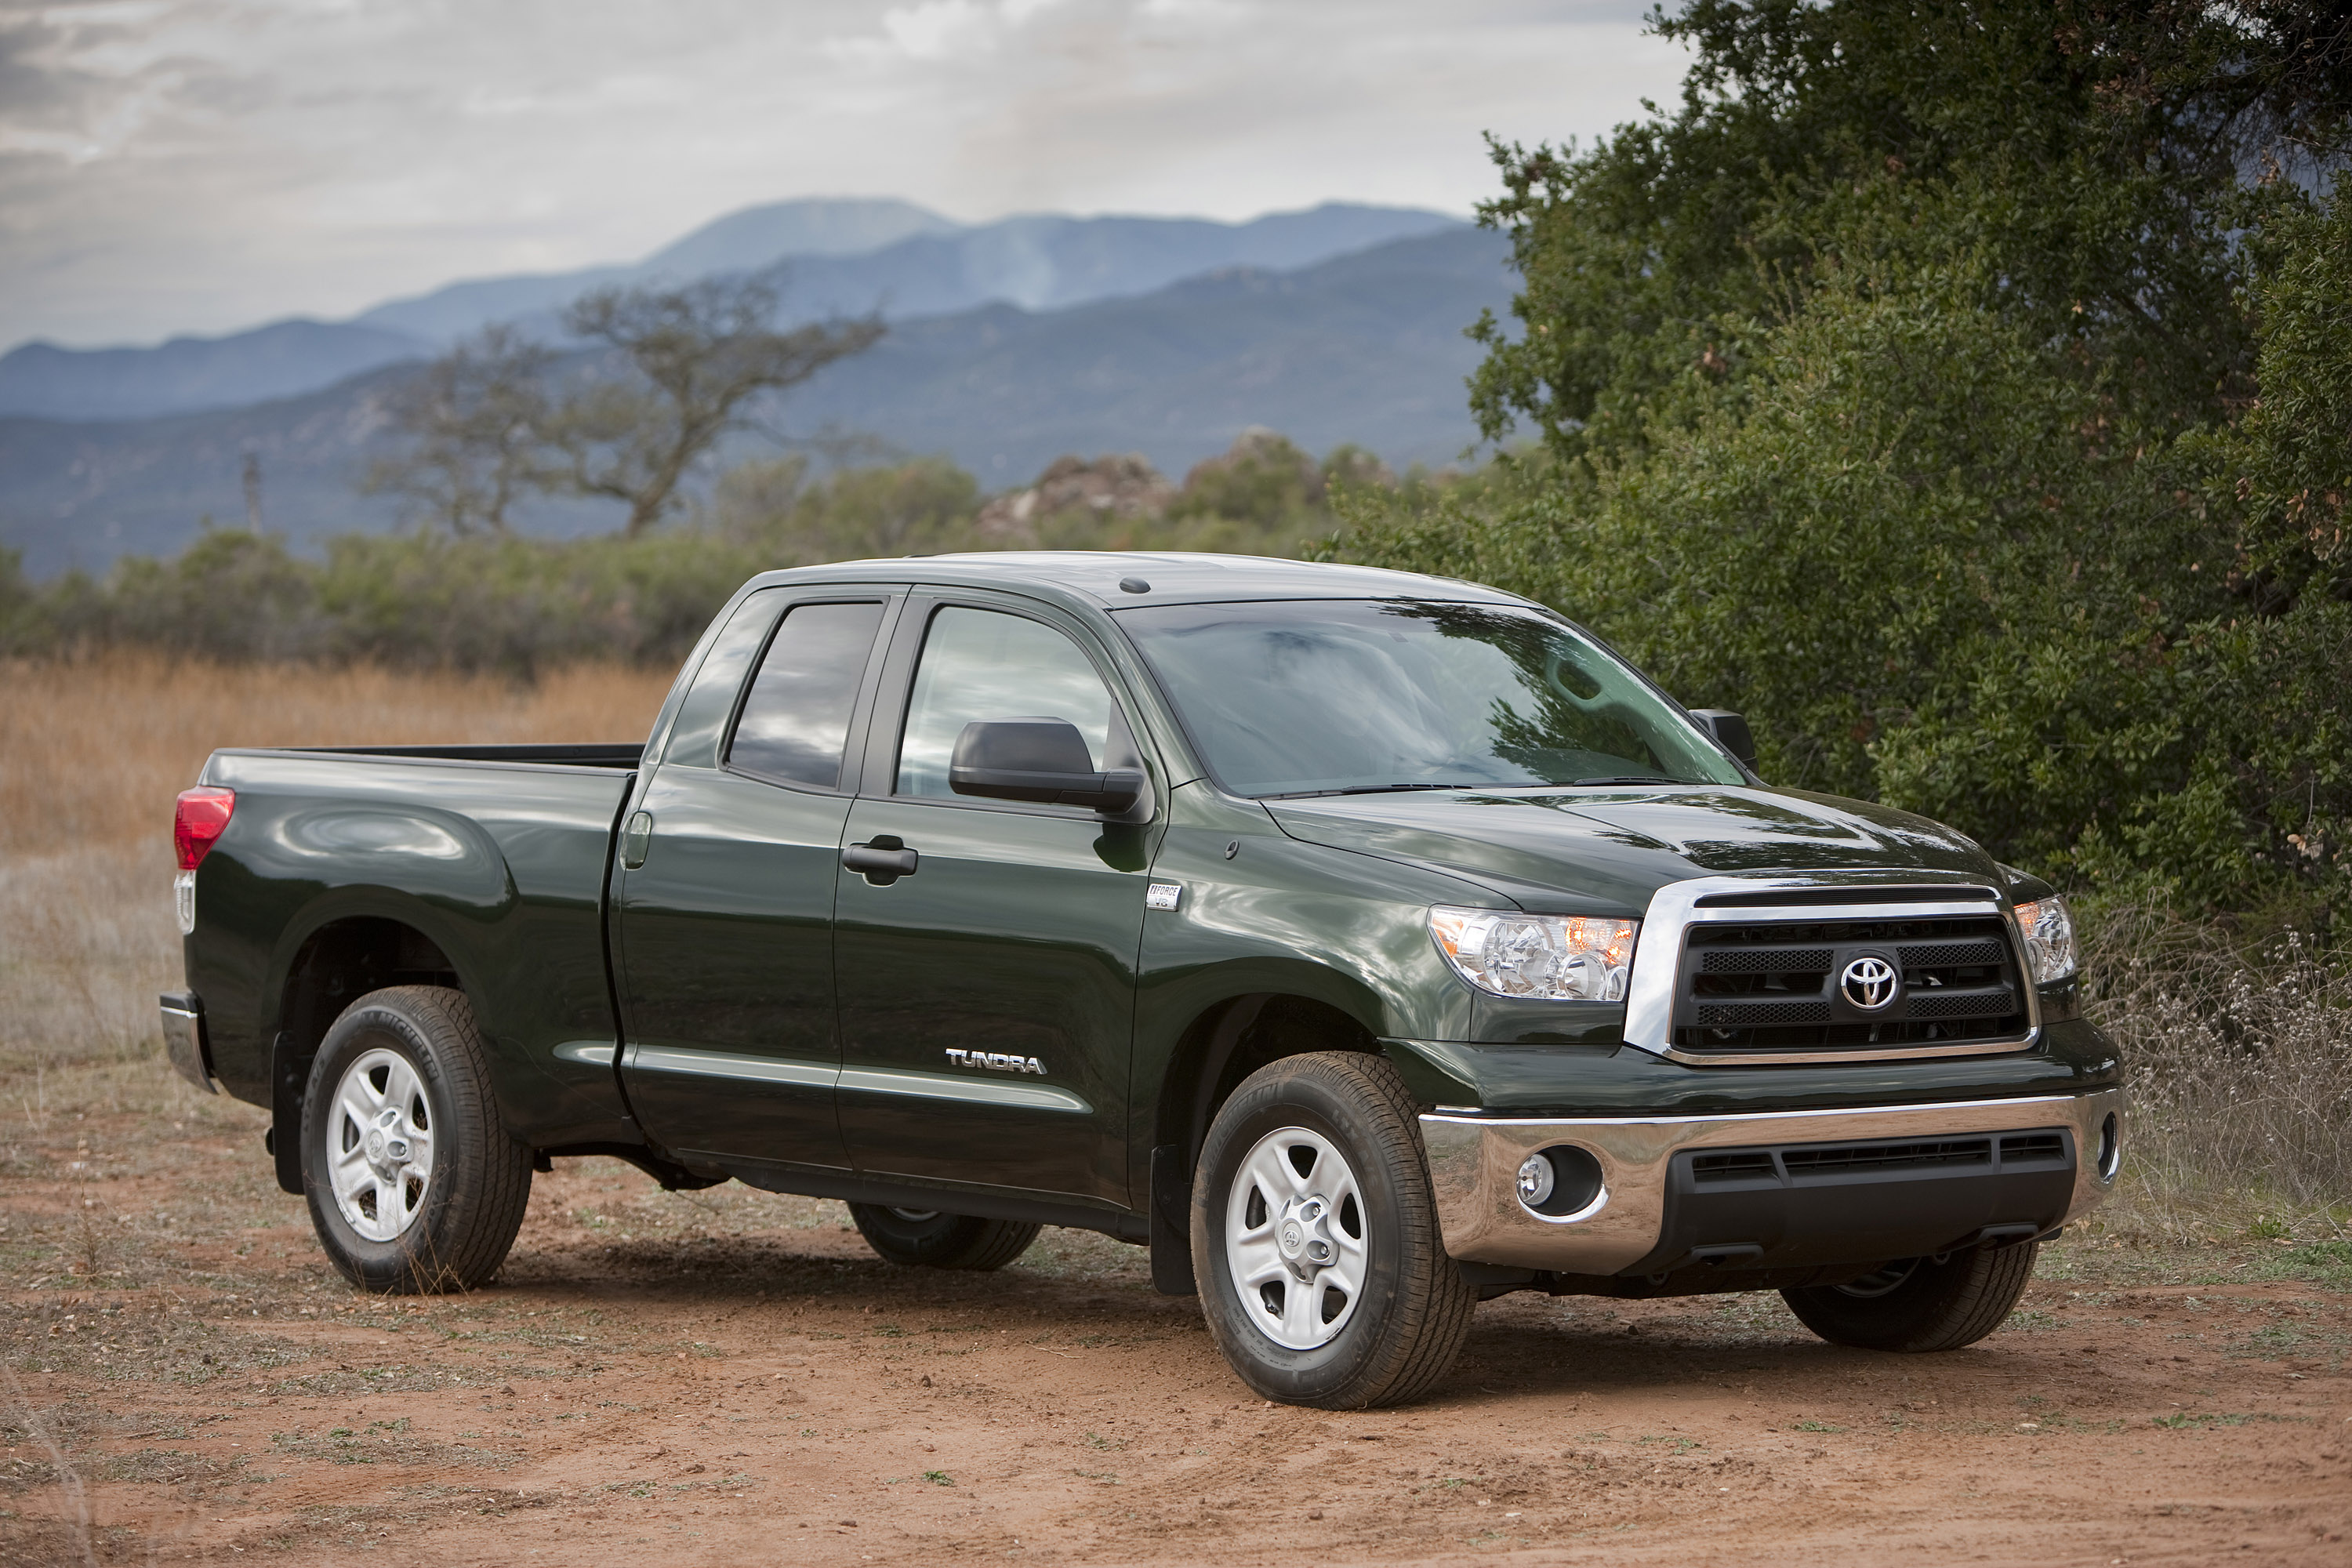 toyota announces prices for 2010 tundra pickup and sequoia sport utility vehicle. Black Bedroom Furniture Sets. Home Design Ideas